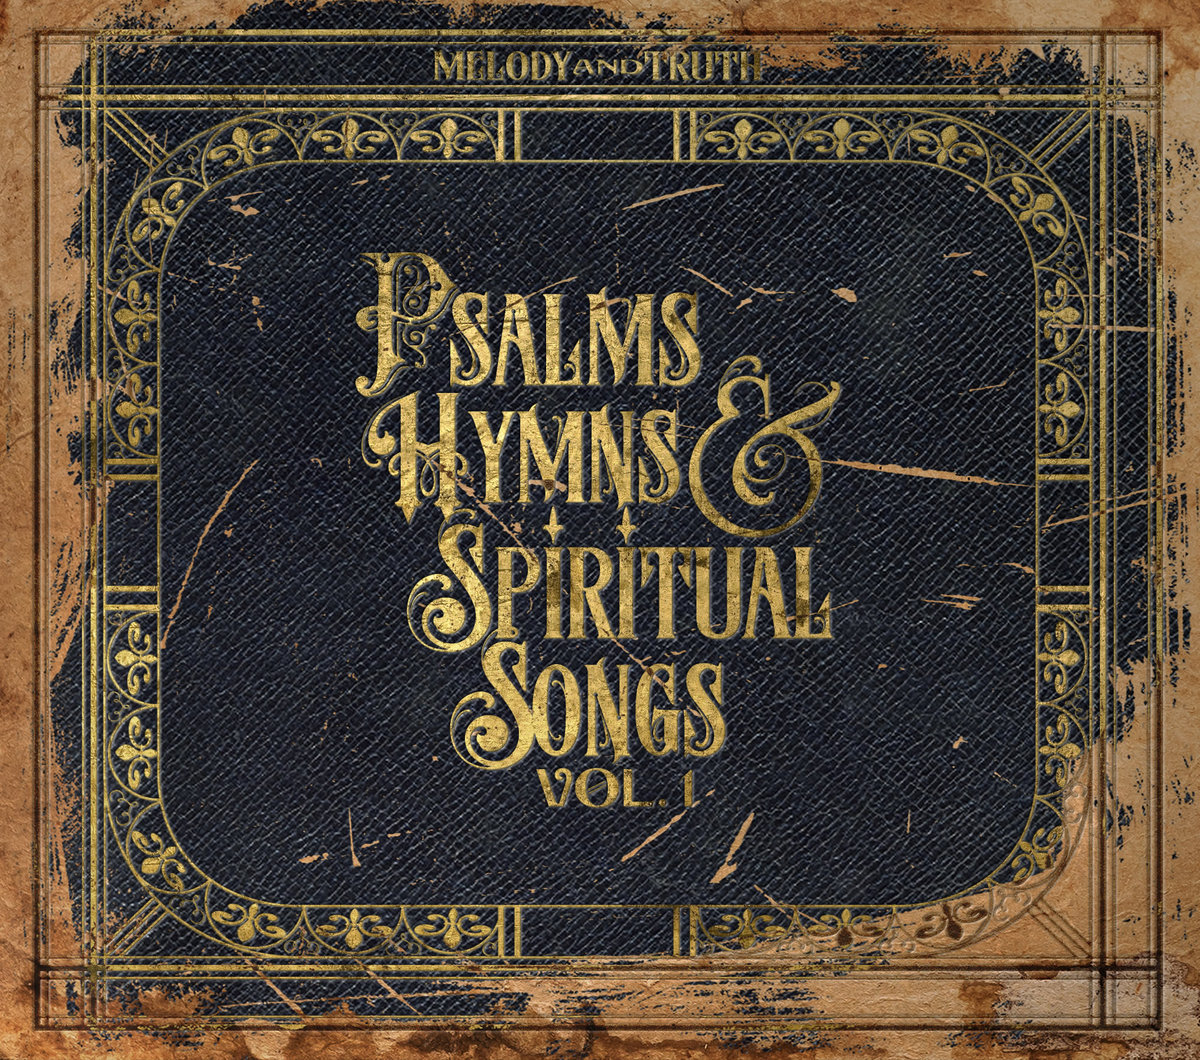 Psalms, Hymns & Spiritual Songs Vol  1   Melody and Truth